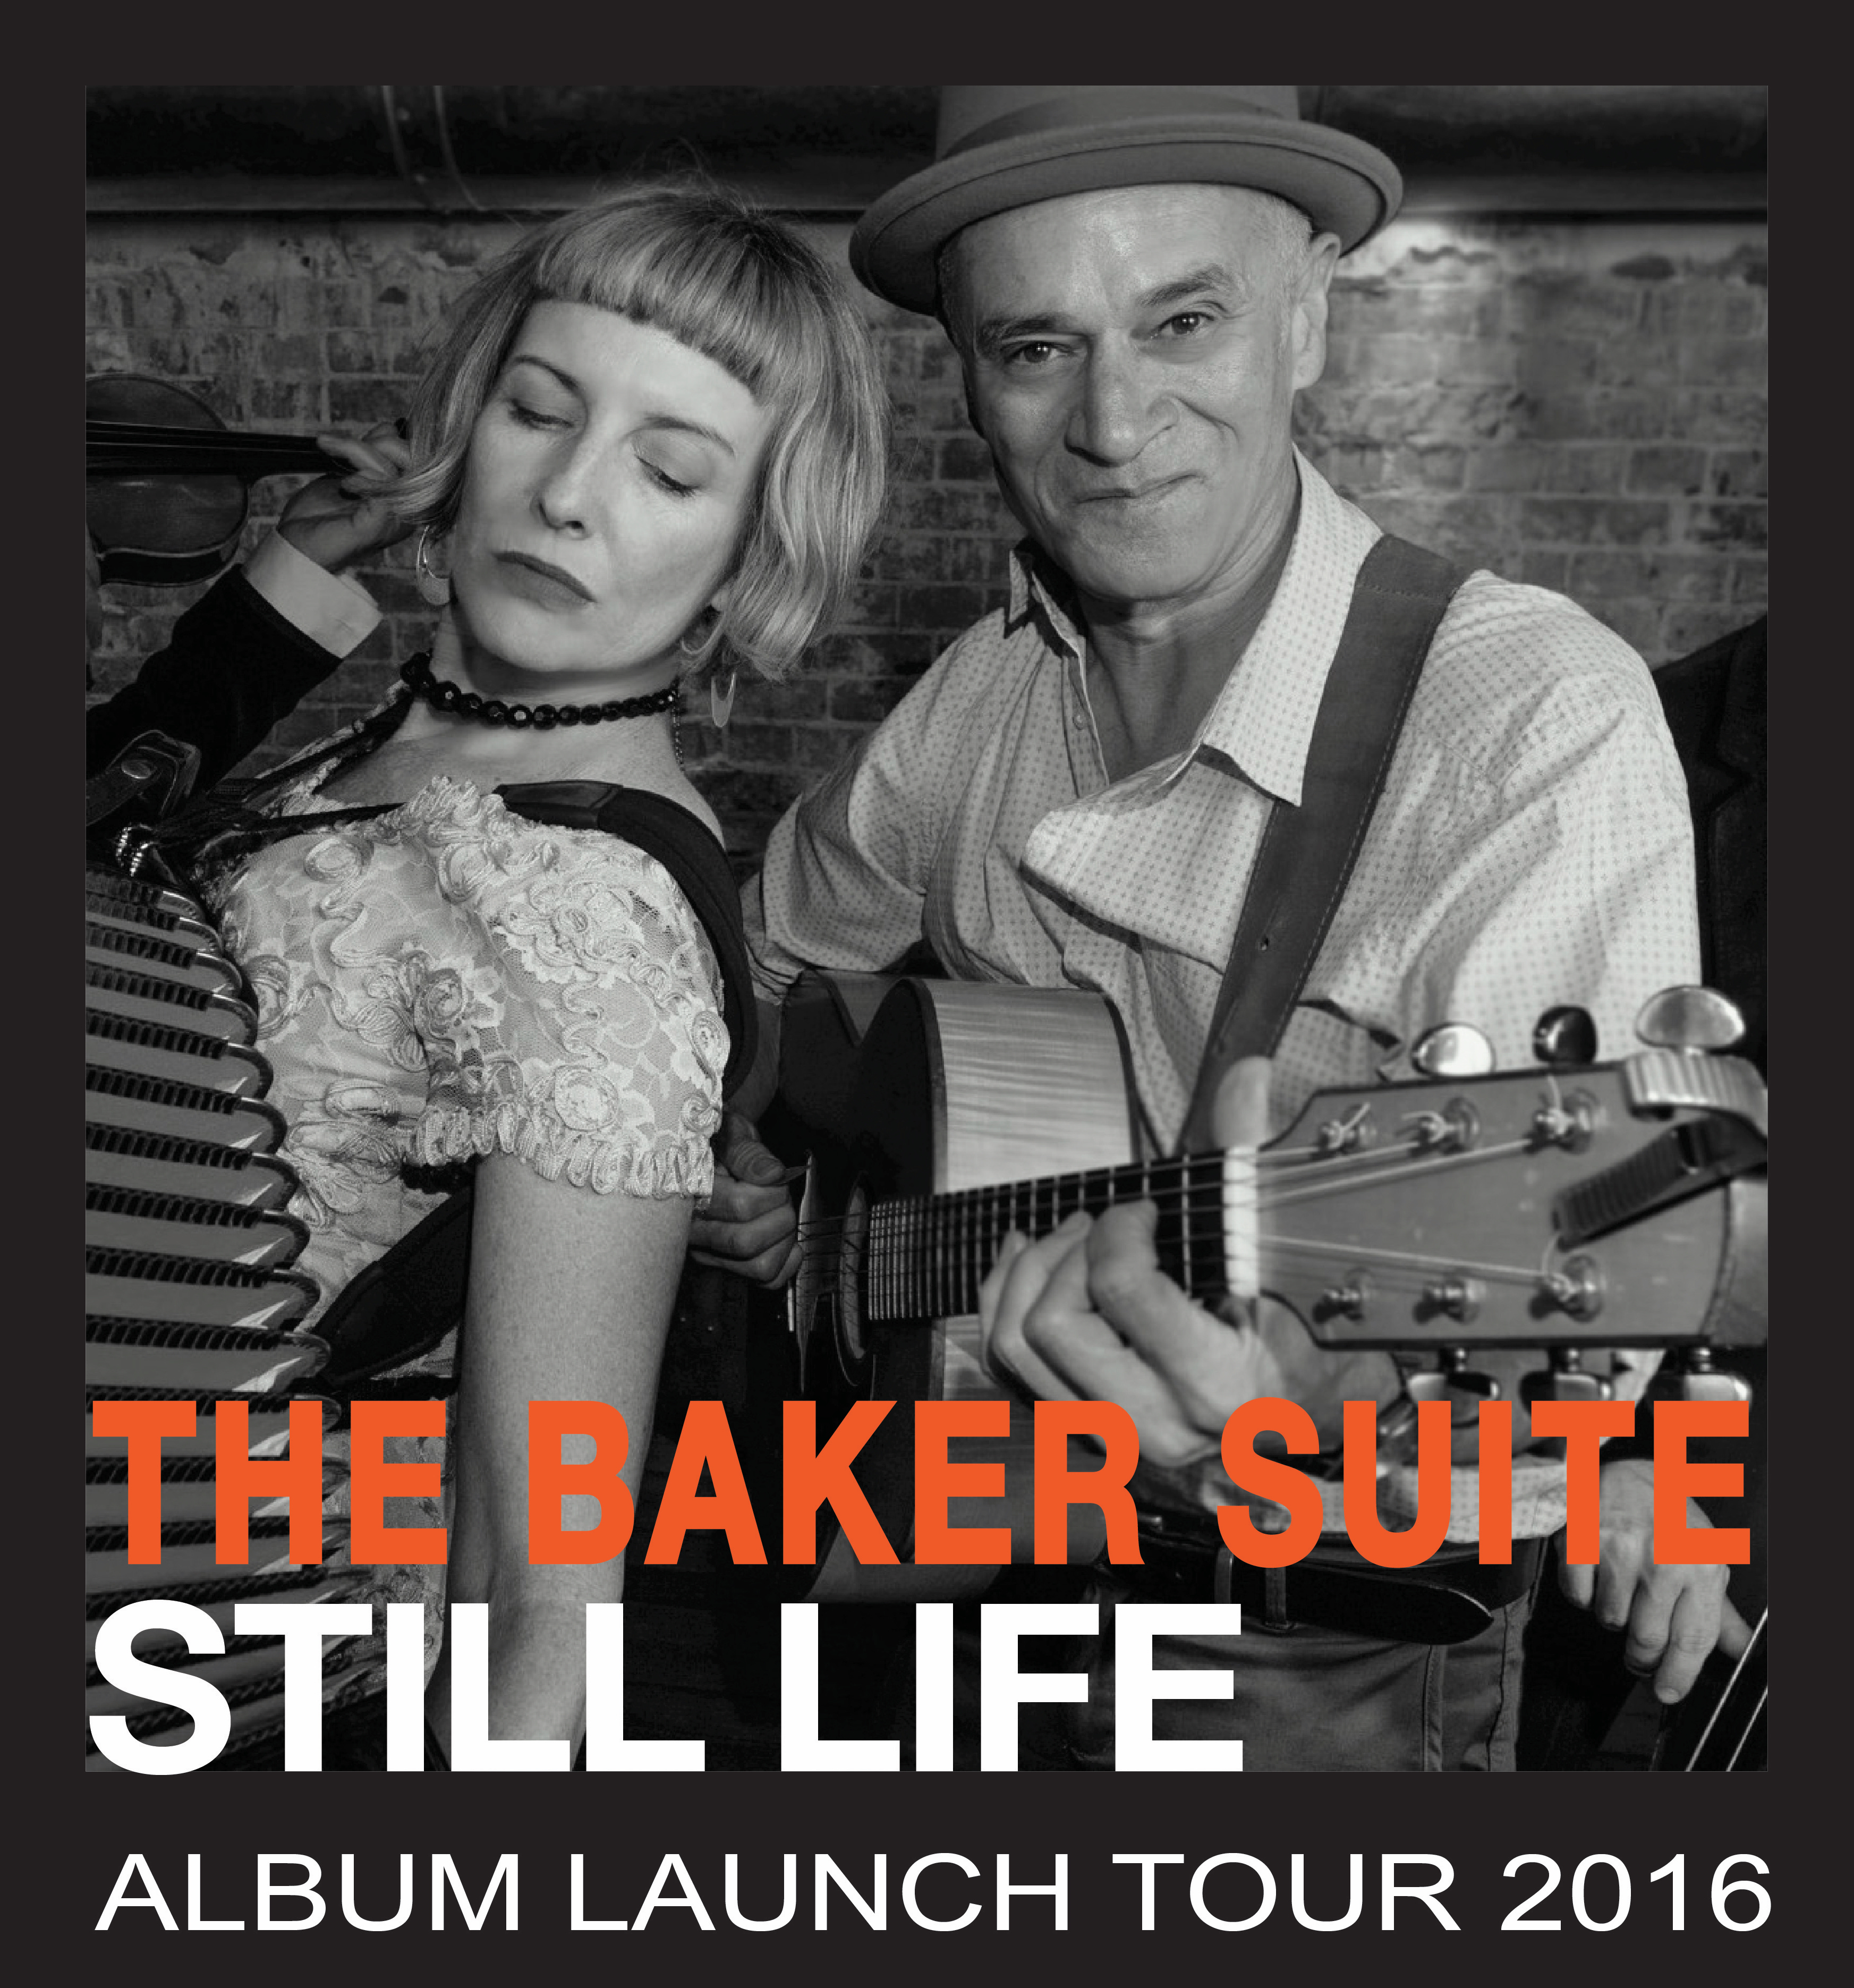 The Baker Suite